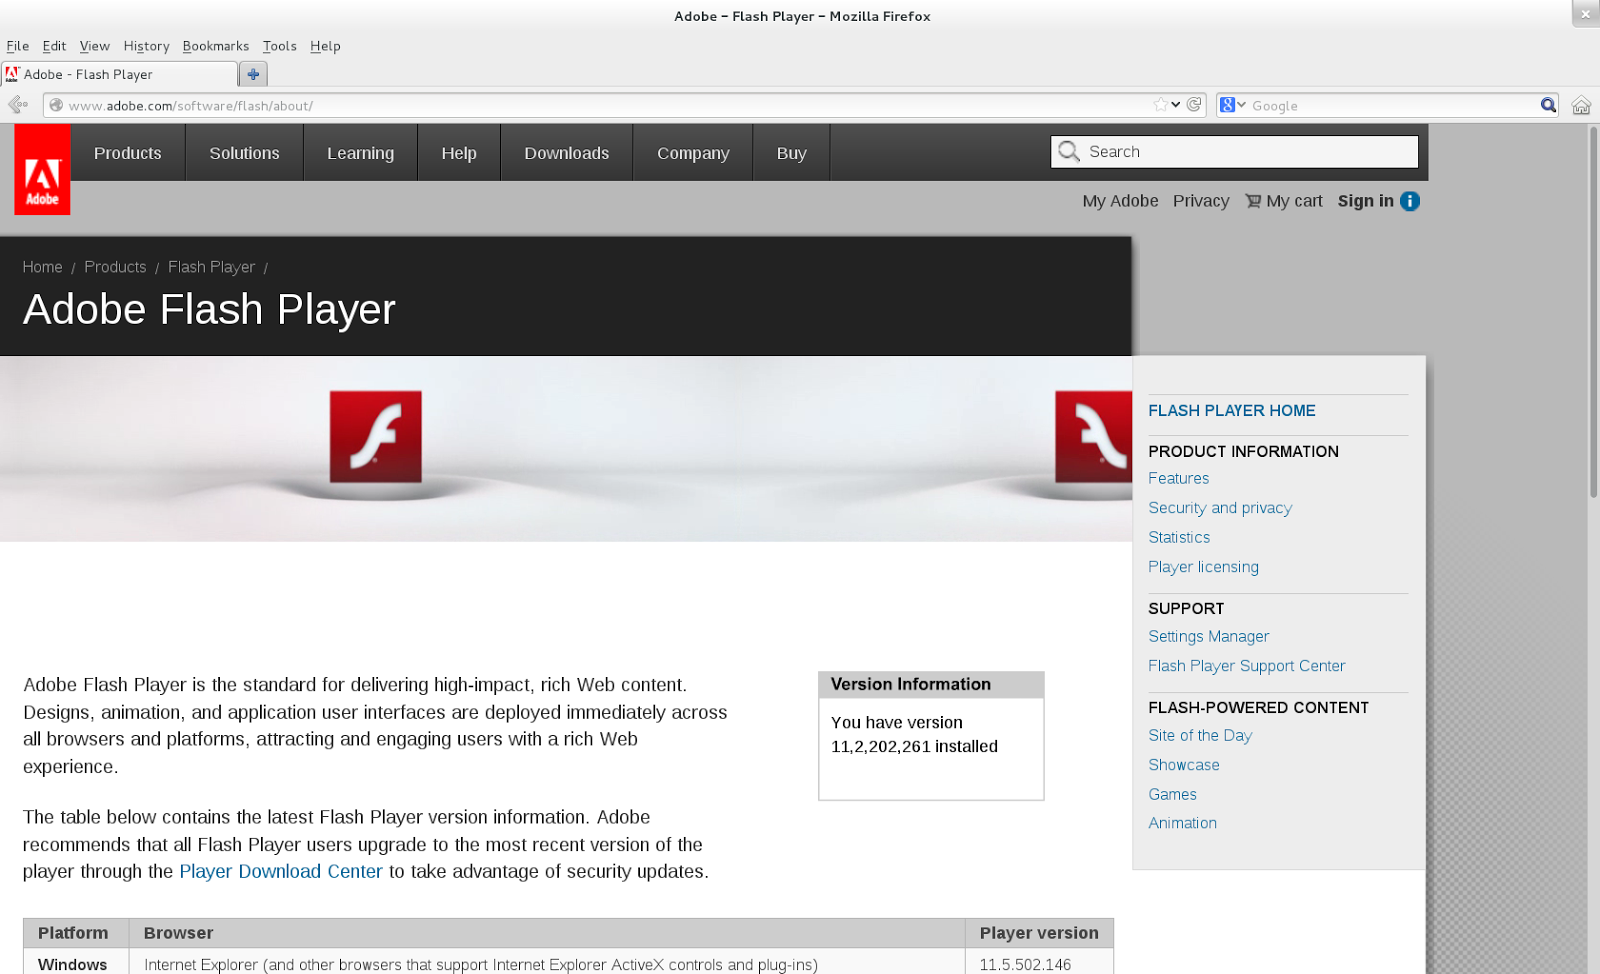 Technozeal Install Adobe Flash Player On Fedora 15 16: install adobe flash